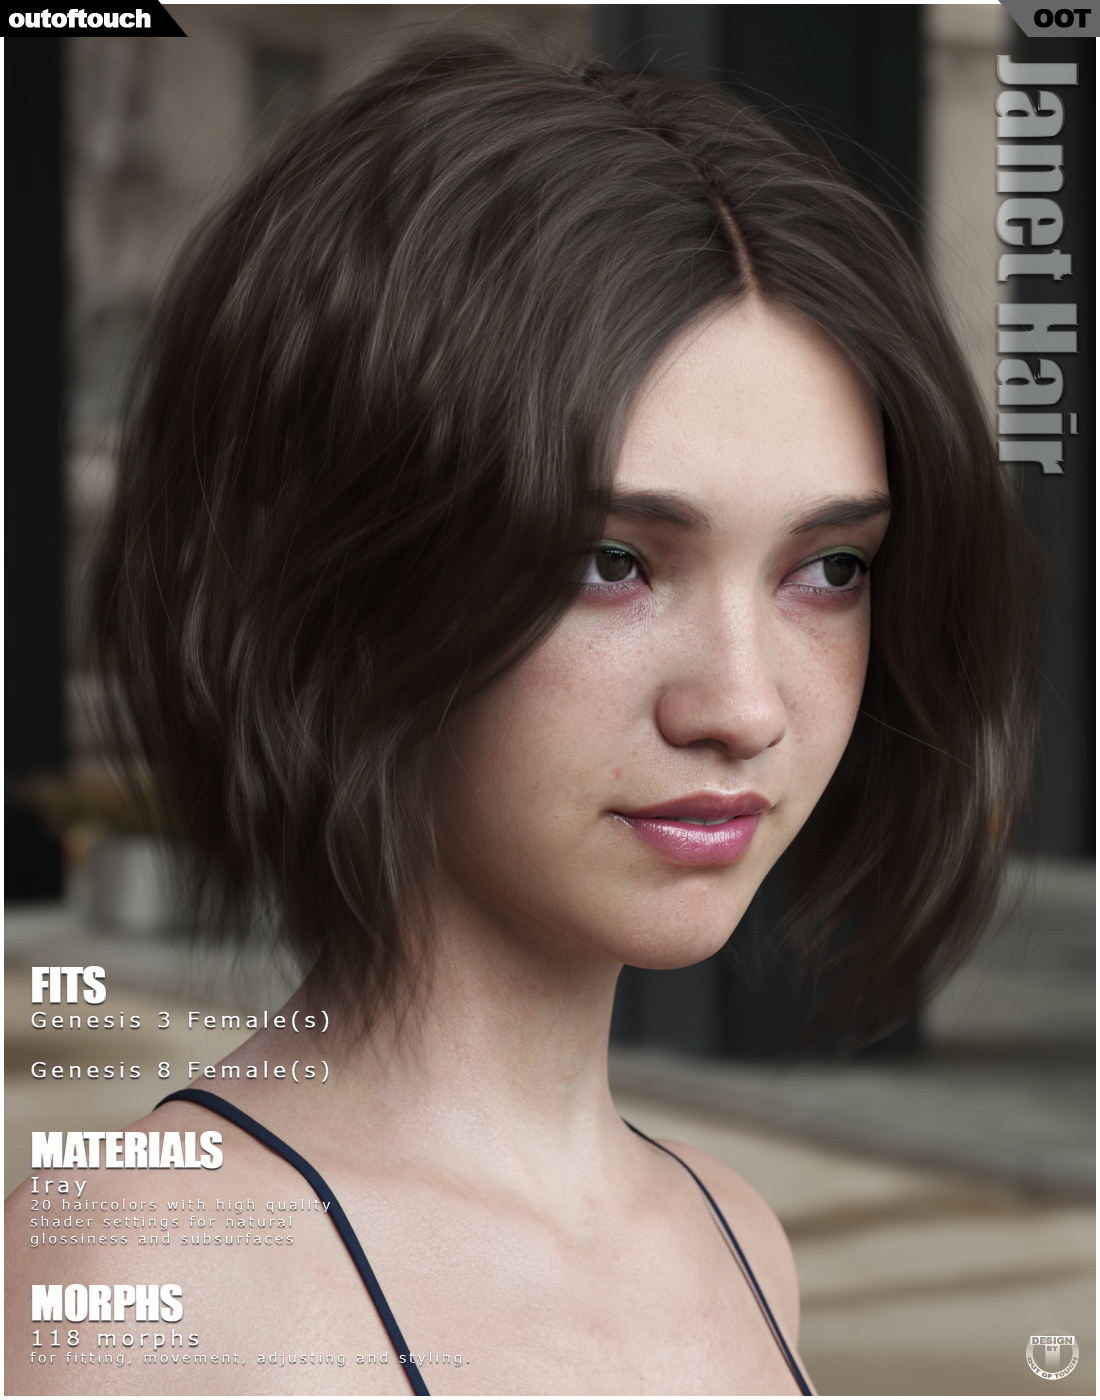 Janet Hair for Genesis 3 and 8 Females by outoftouch